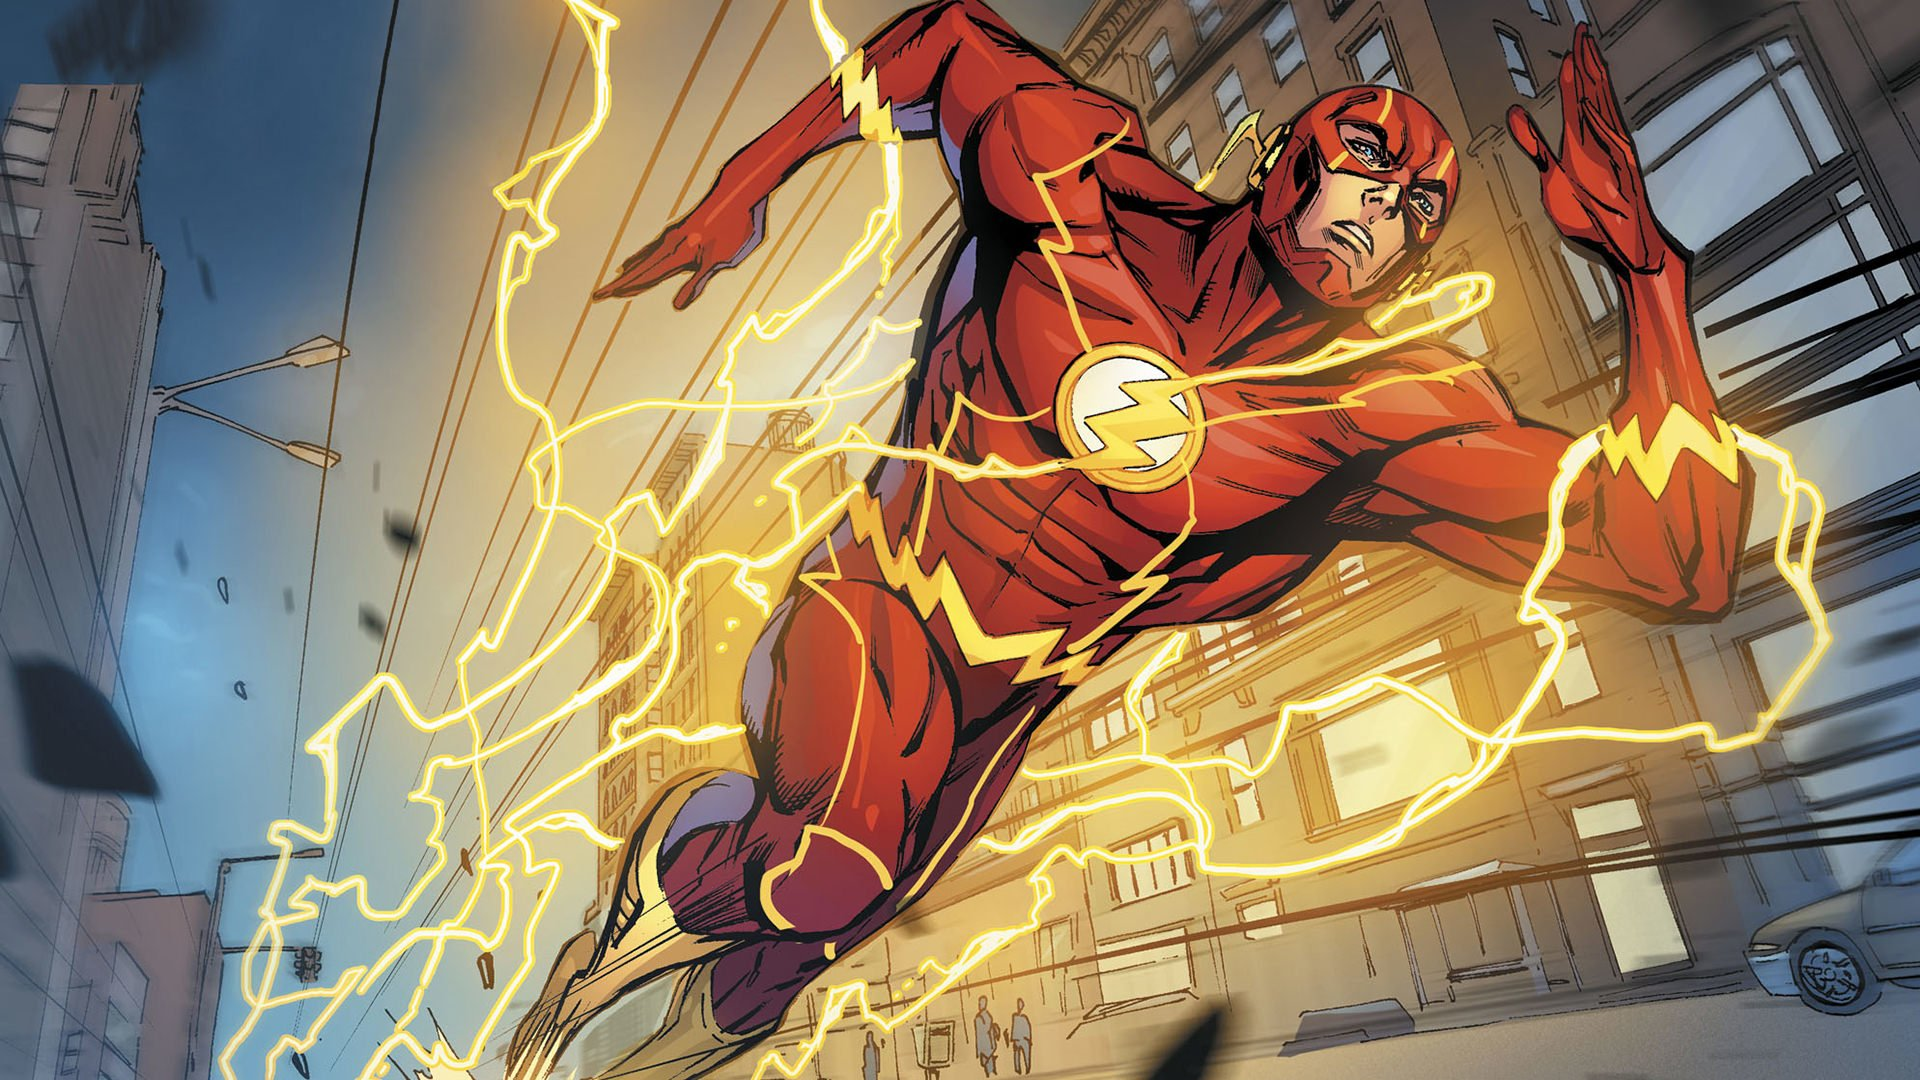 The Flash HD Wallpaper  Background Image  1920x1080  ID